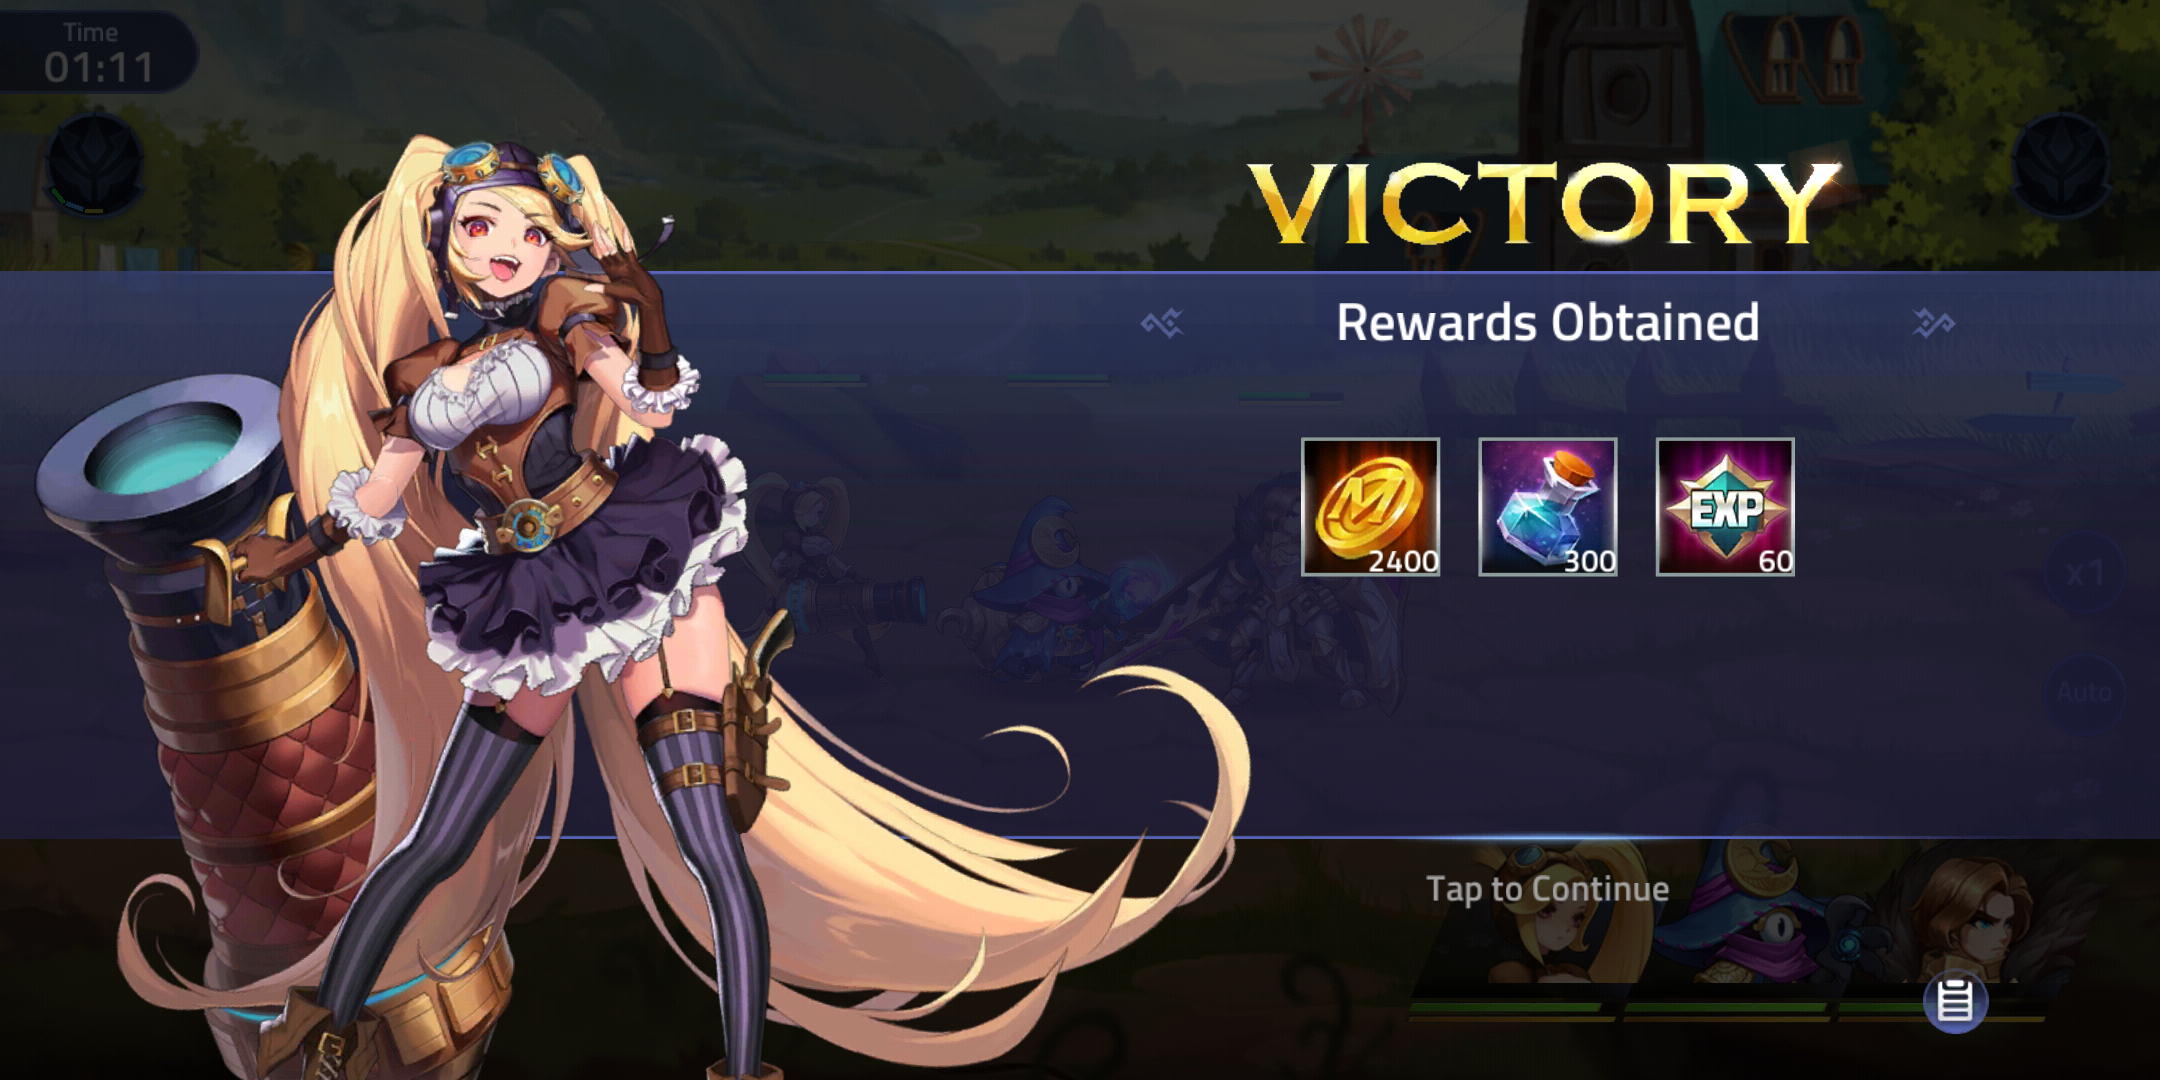 Screenshot of a battle win in Mobile Legends: Adventure